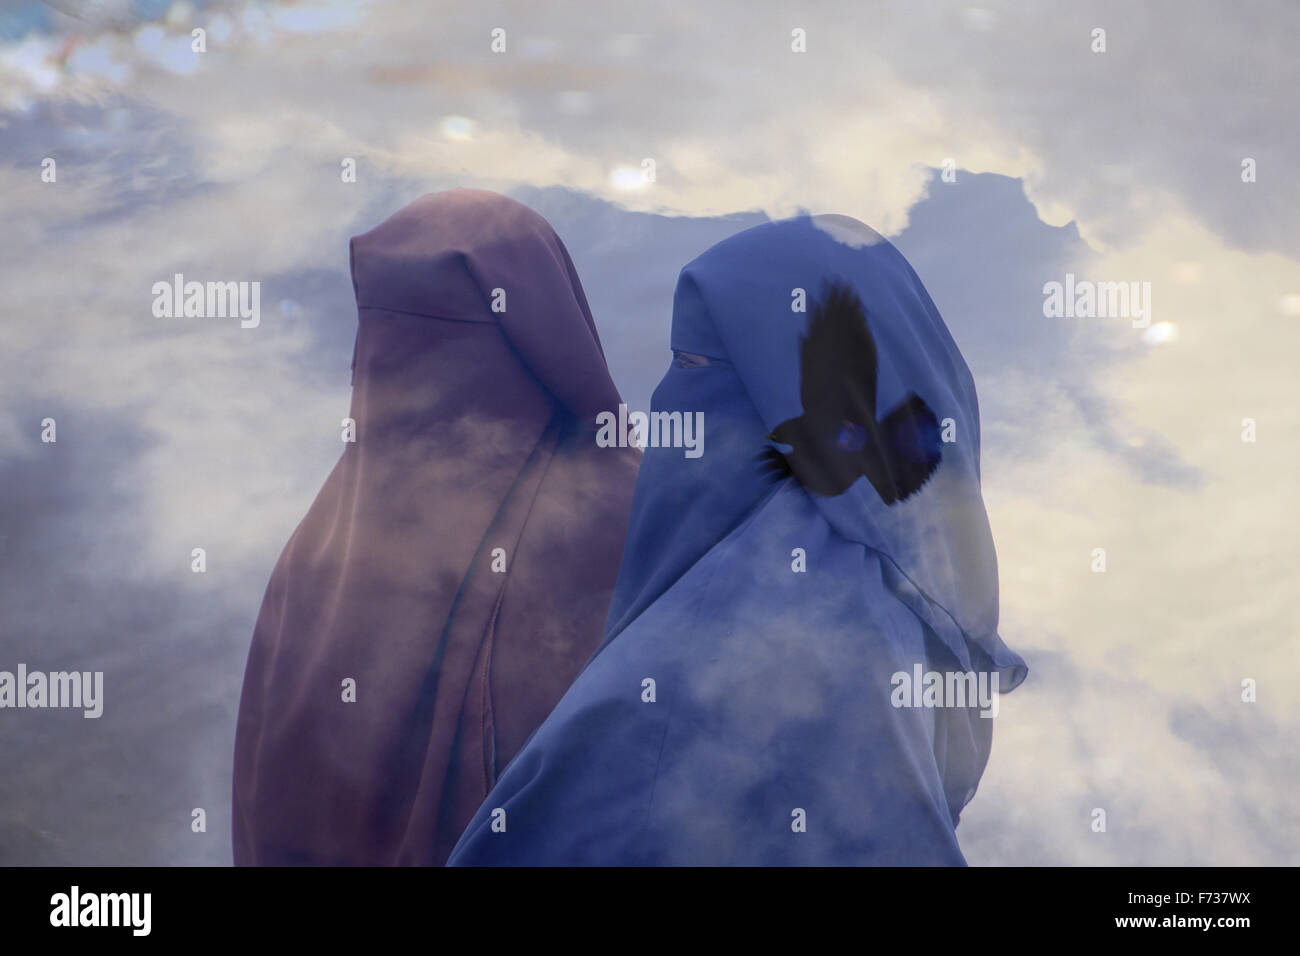 Double exposure of Muslim women wearing full Niqab veil and a bird flying in the sky - Stock Image